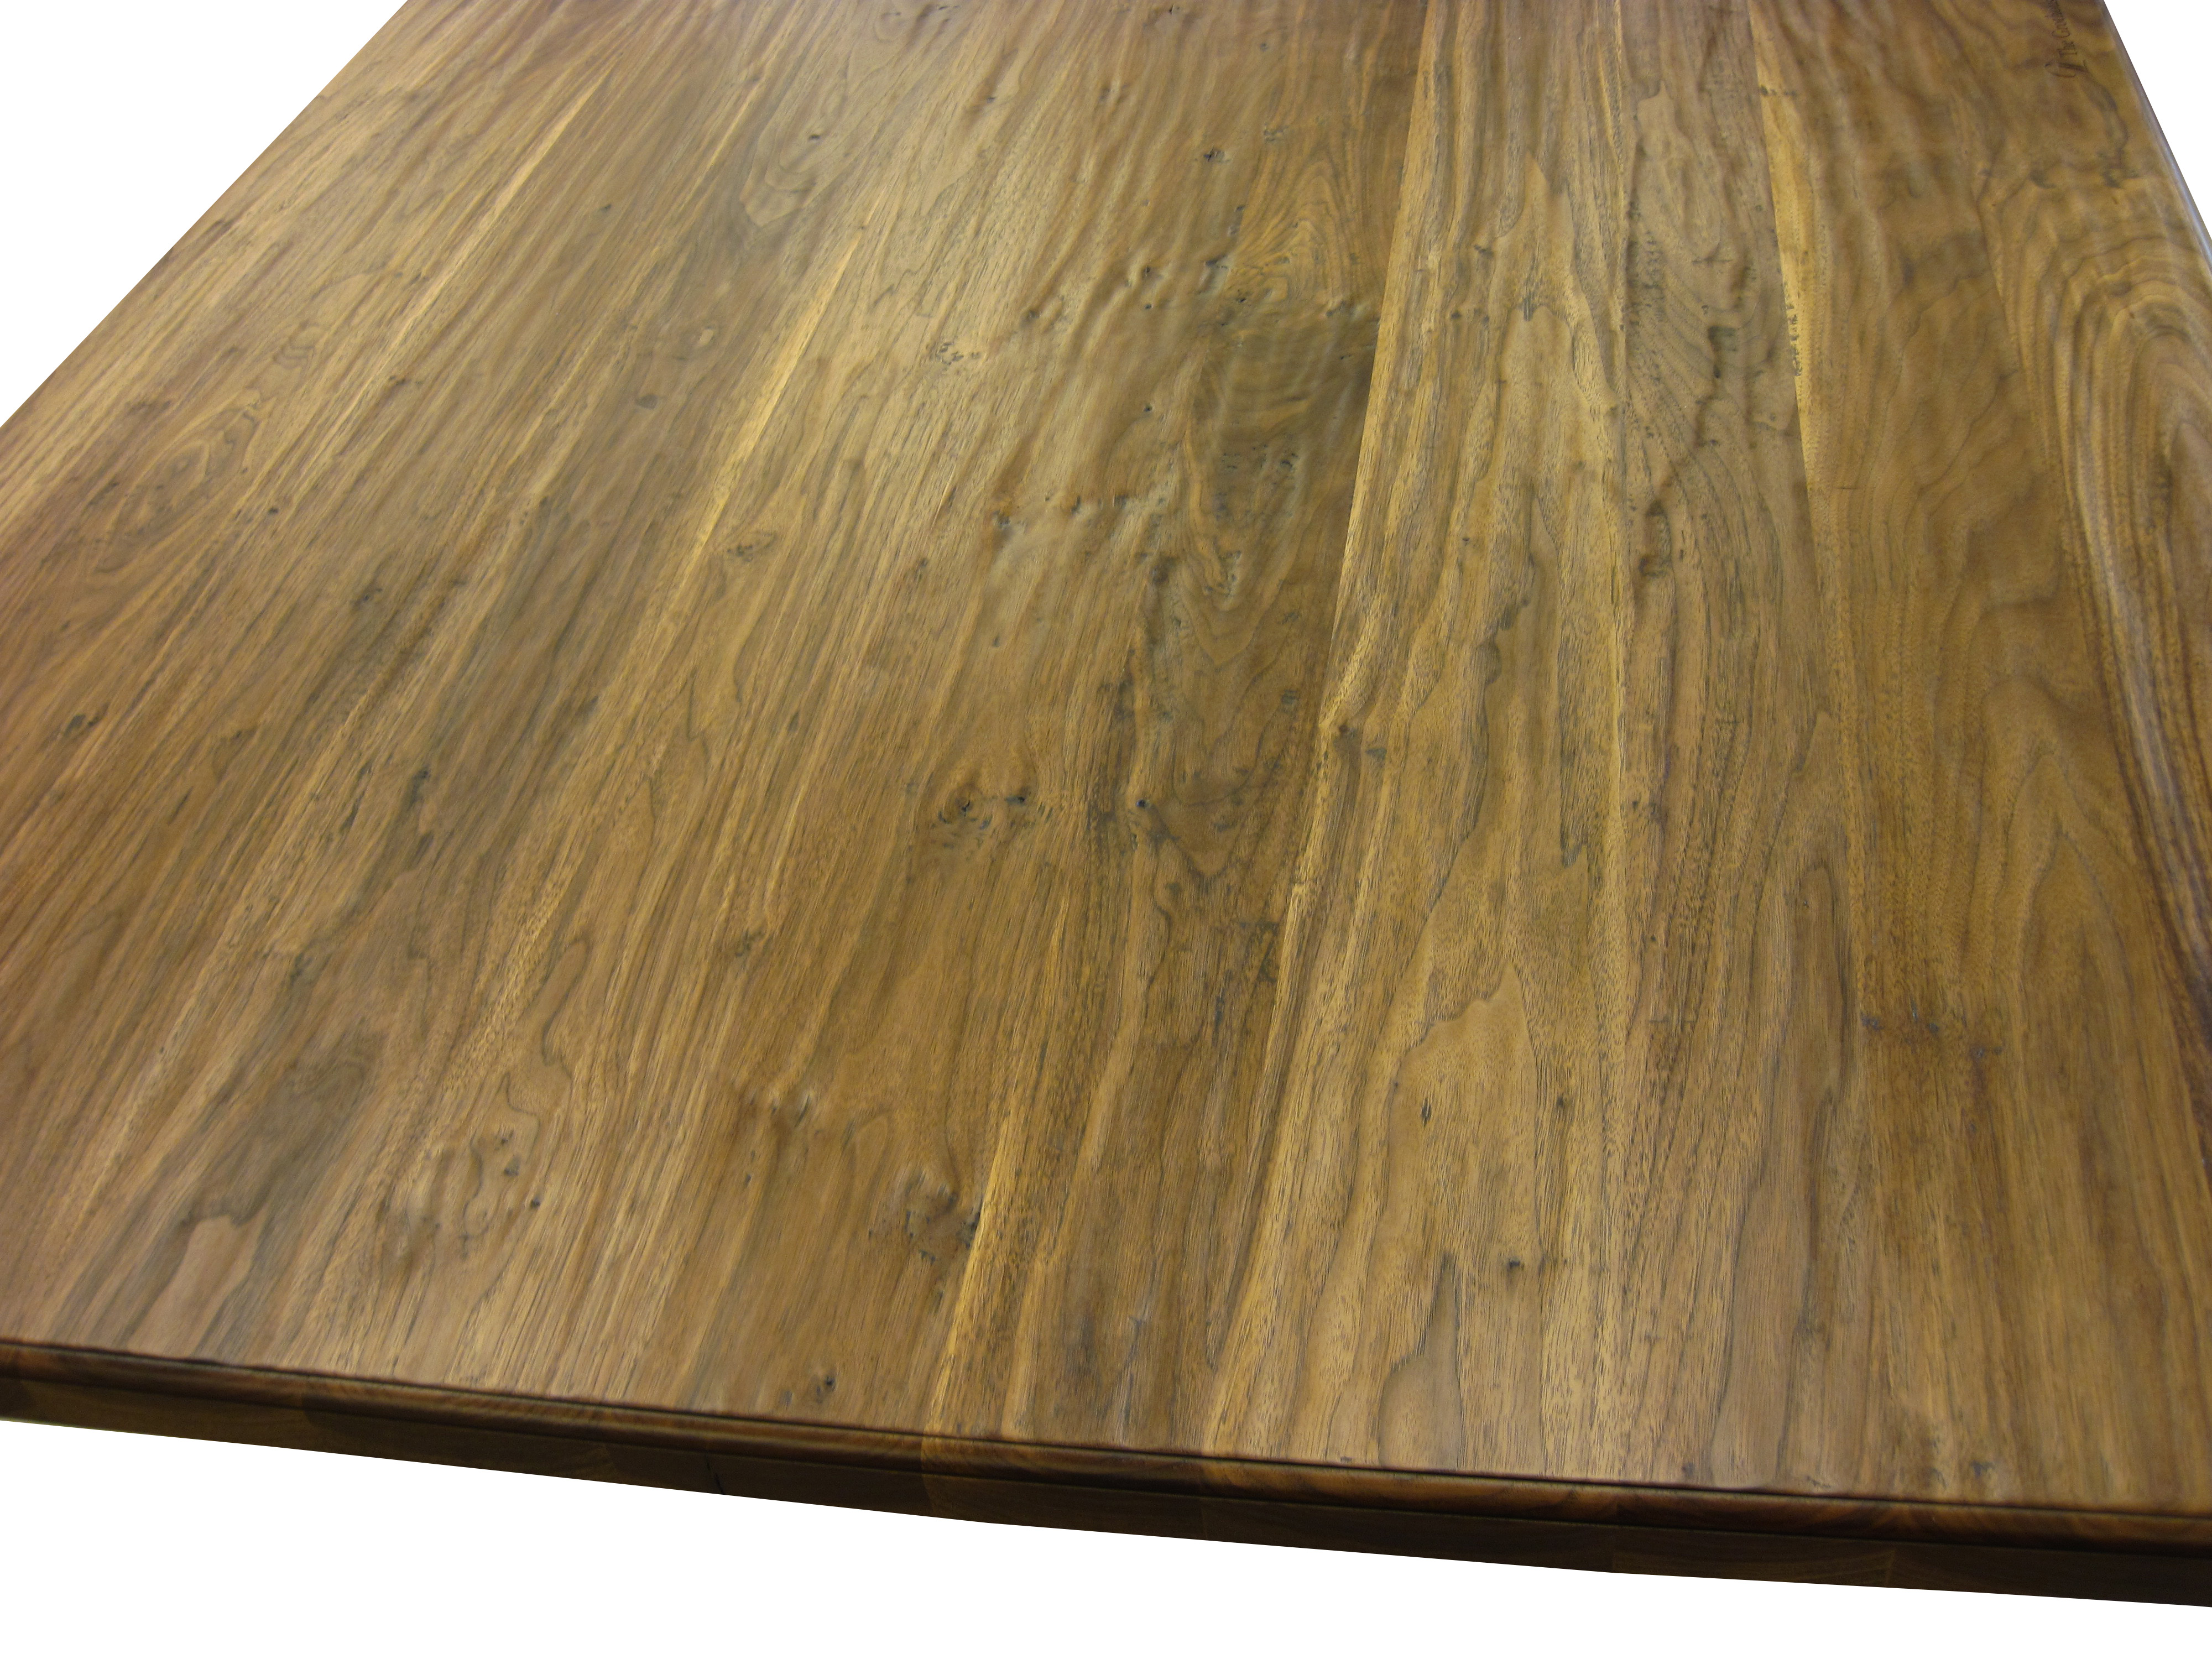 Walnut Hand Planed Wood Counter with Durata® Finish